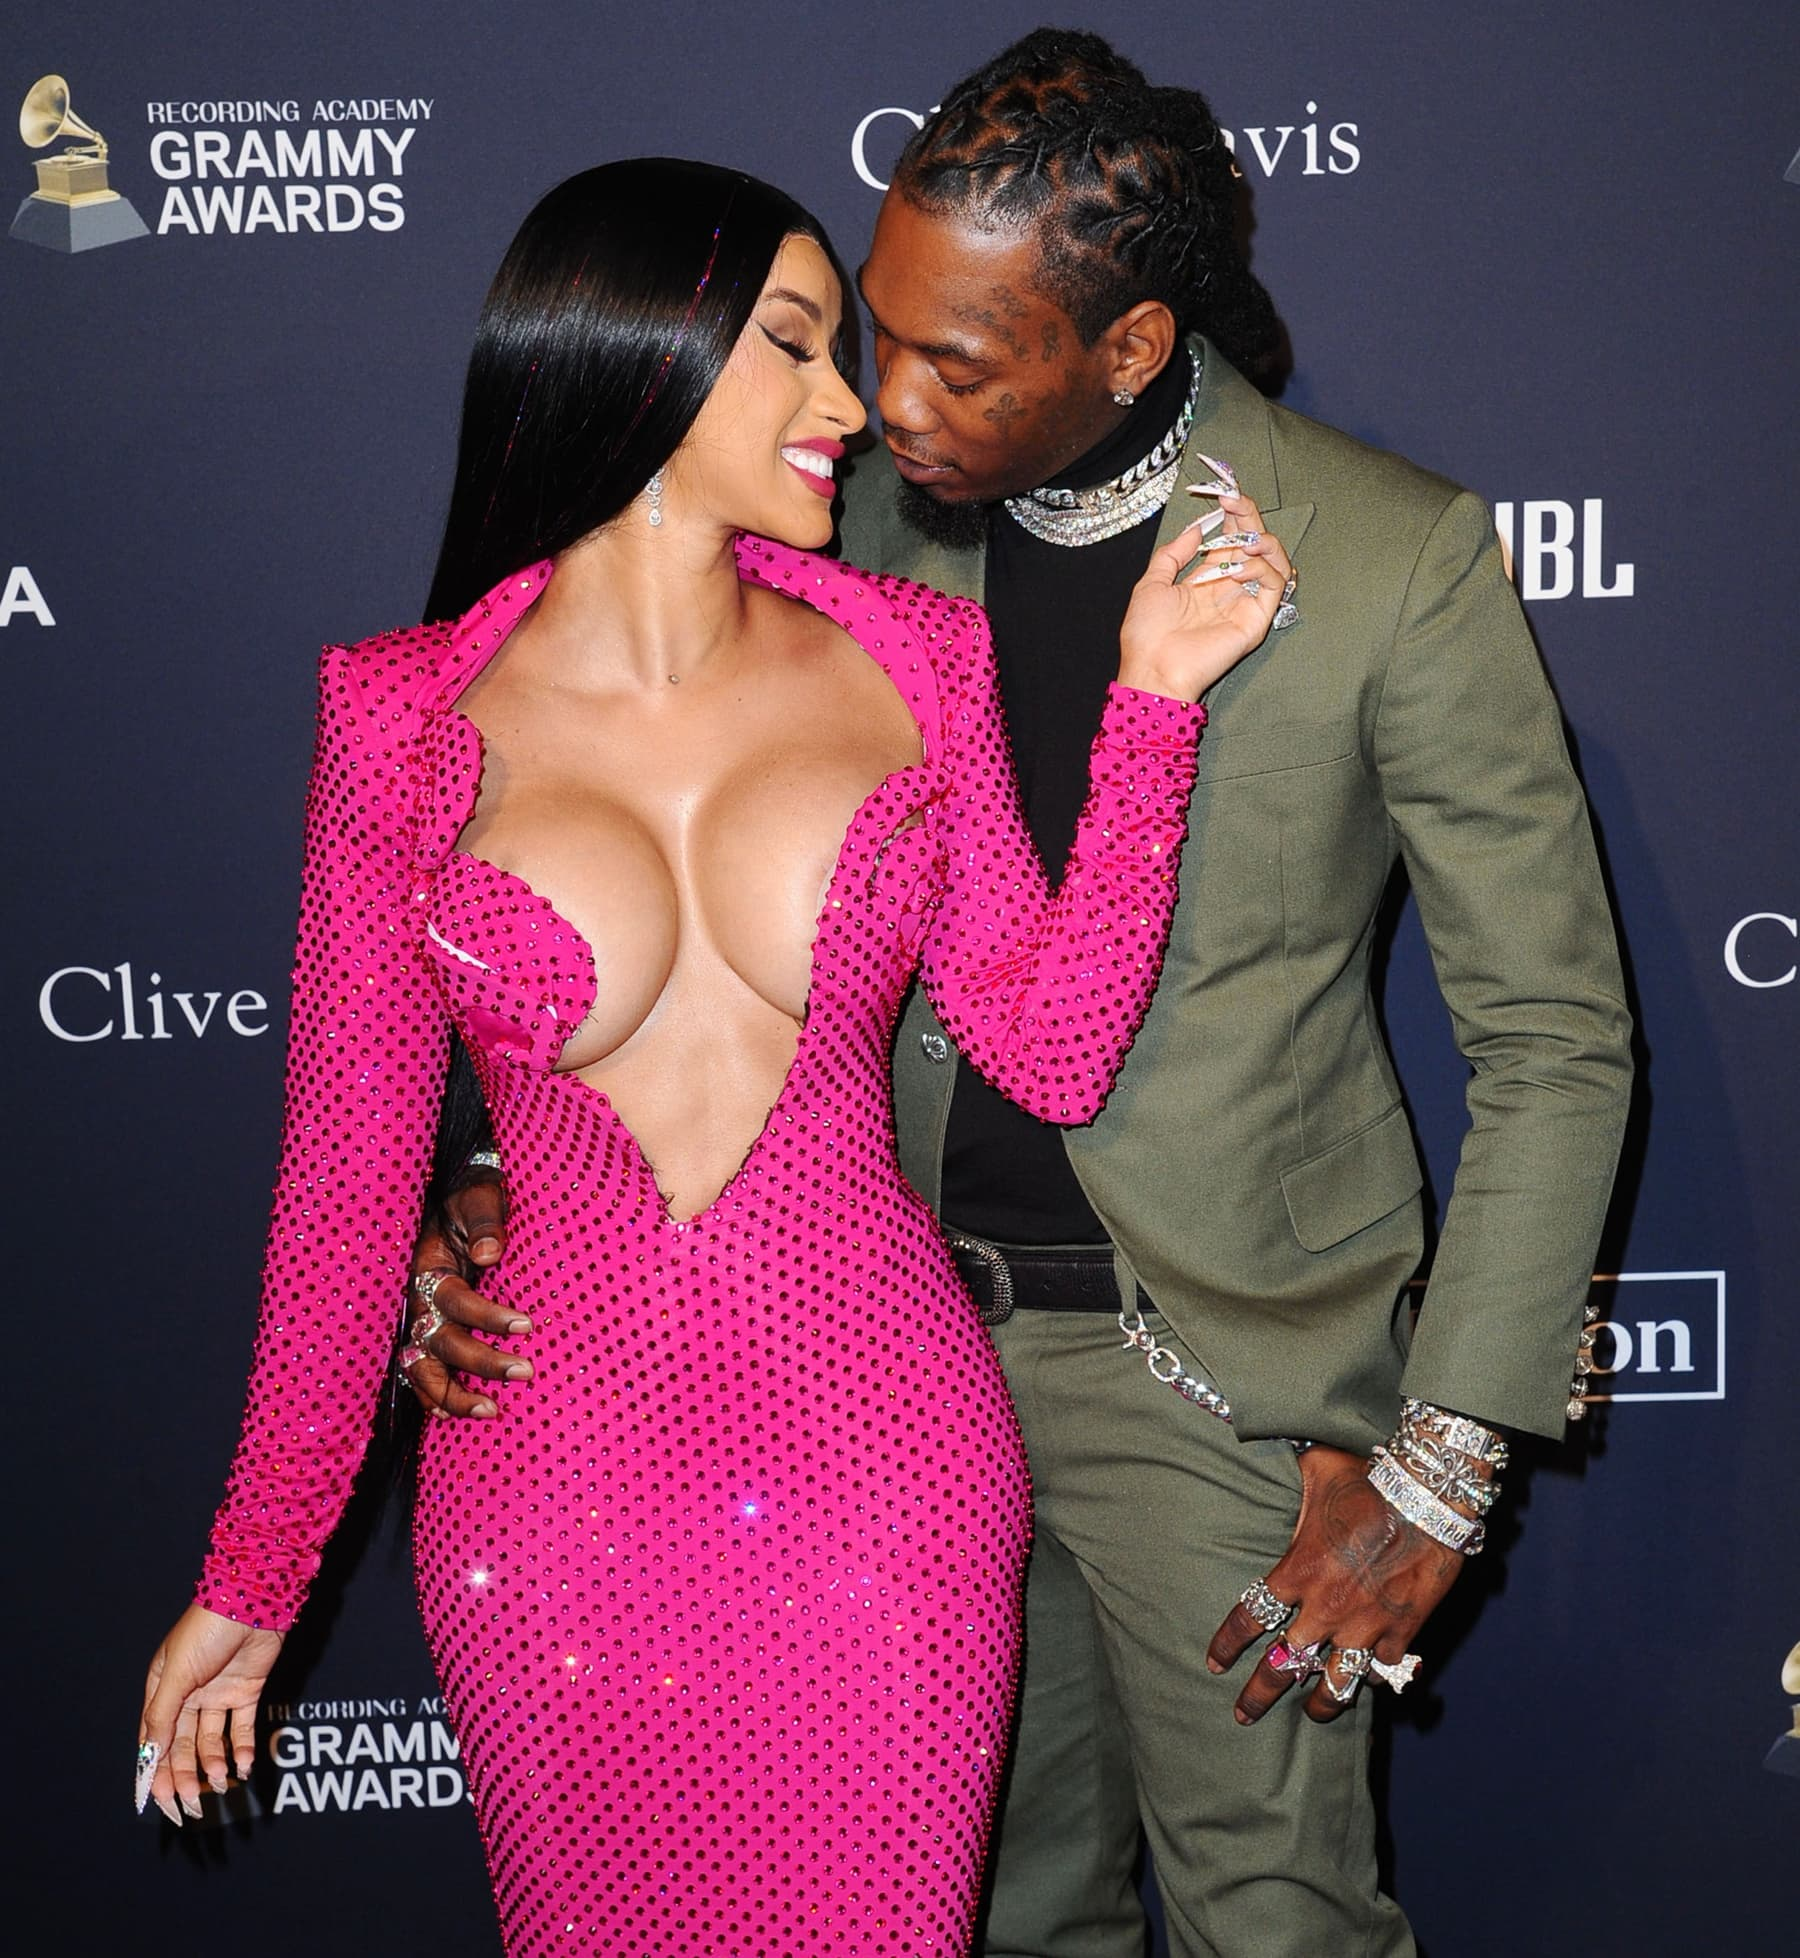 Cardi B and Offset married in a private ceremony in 2017